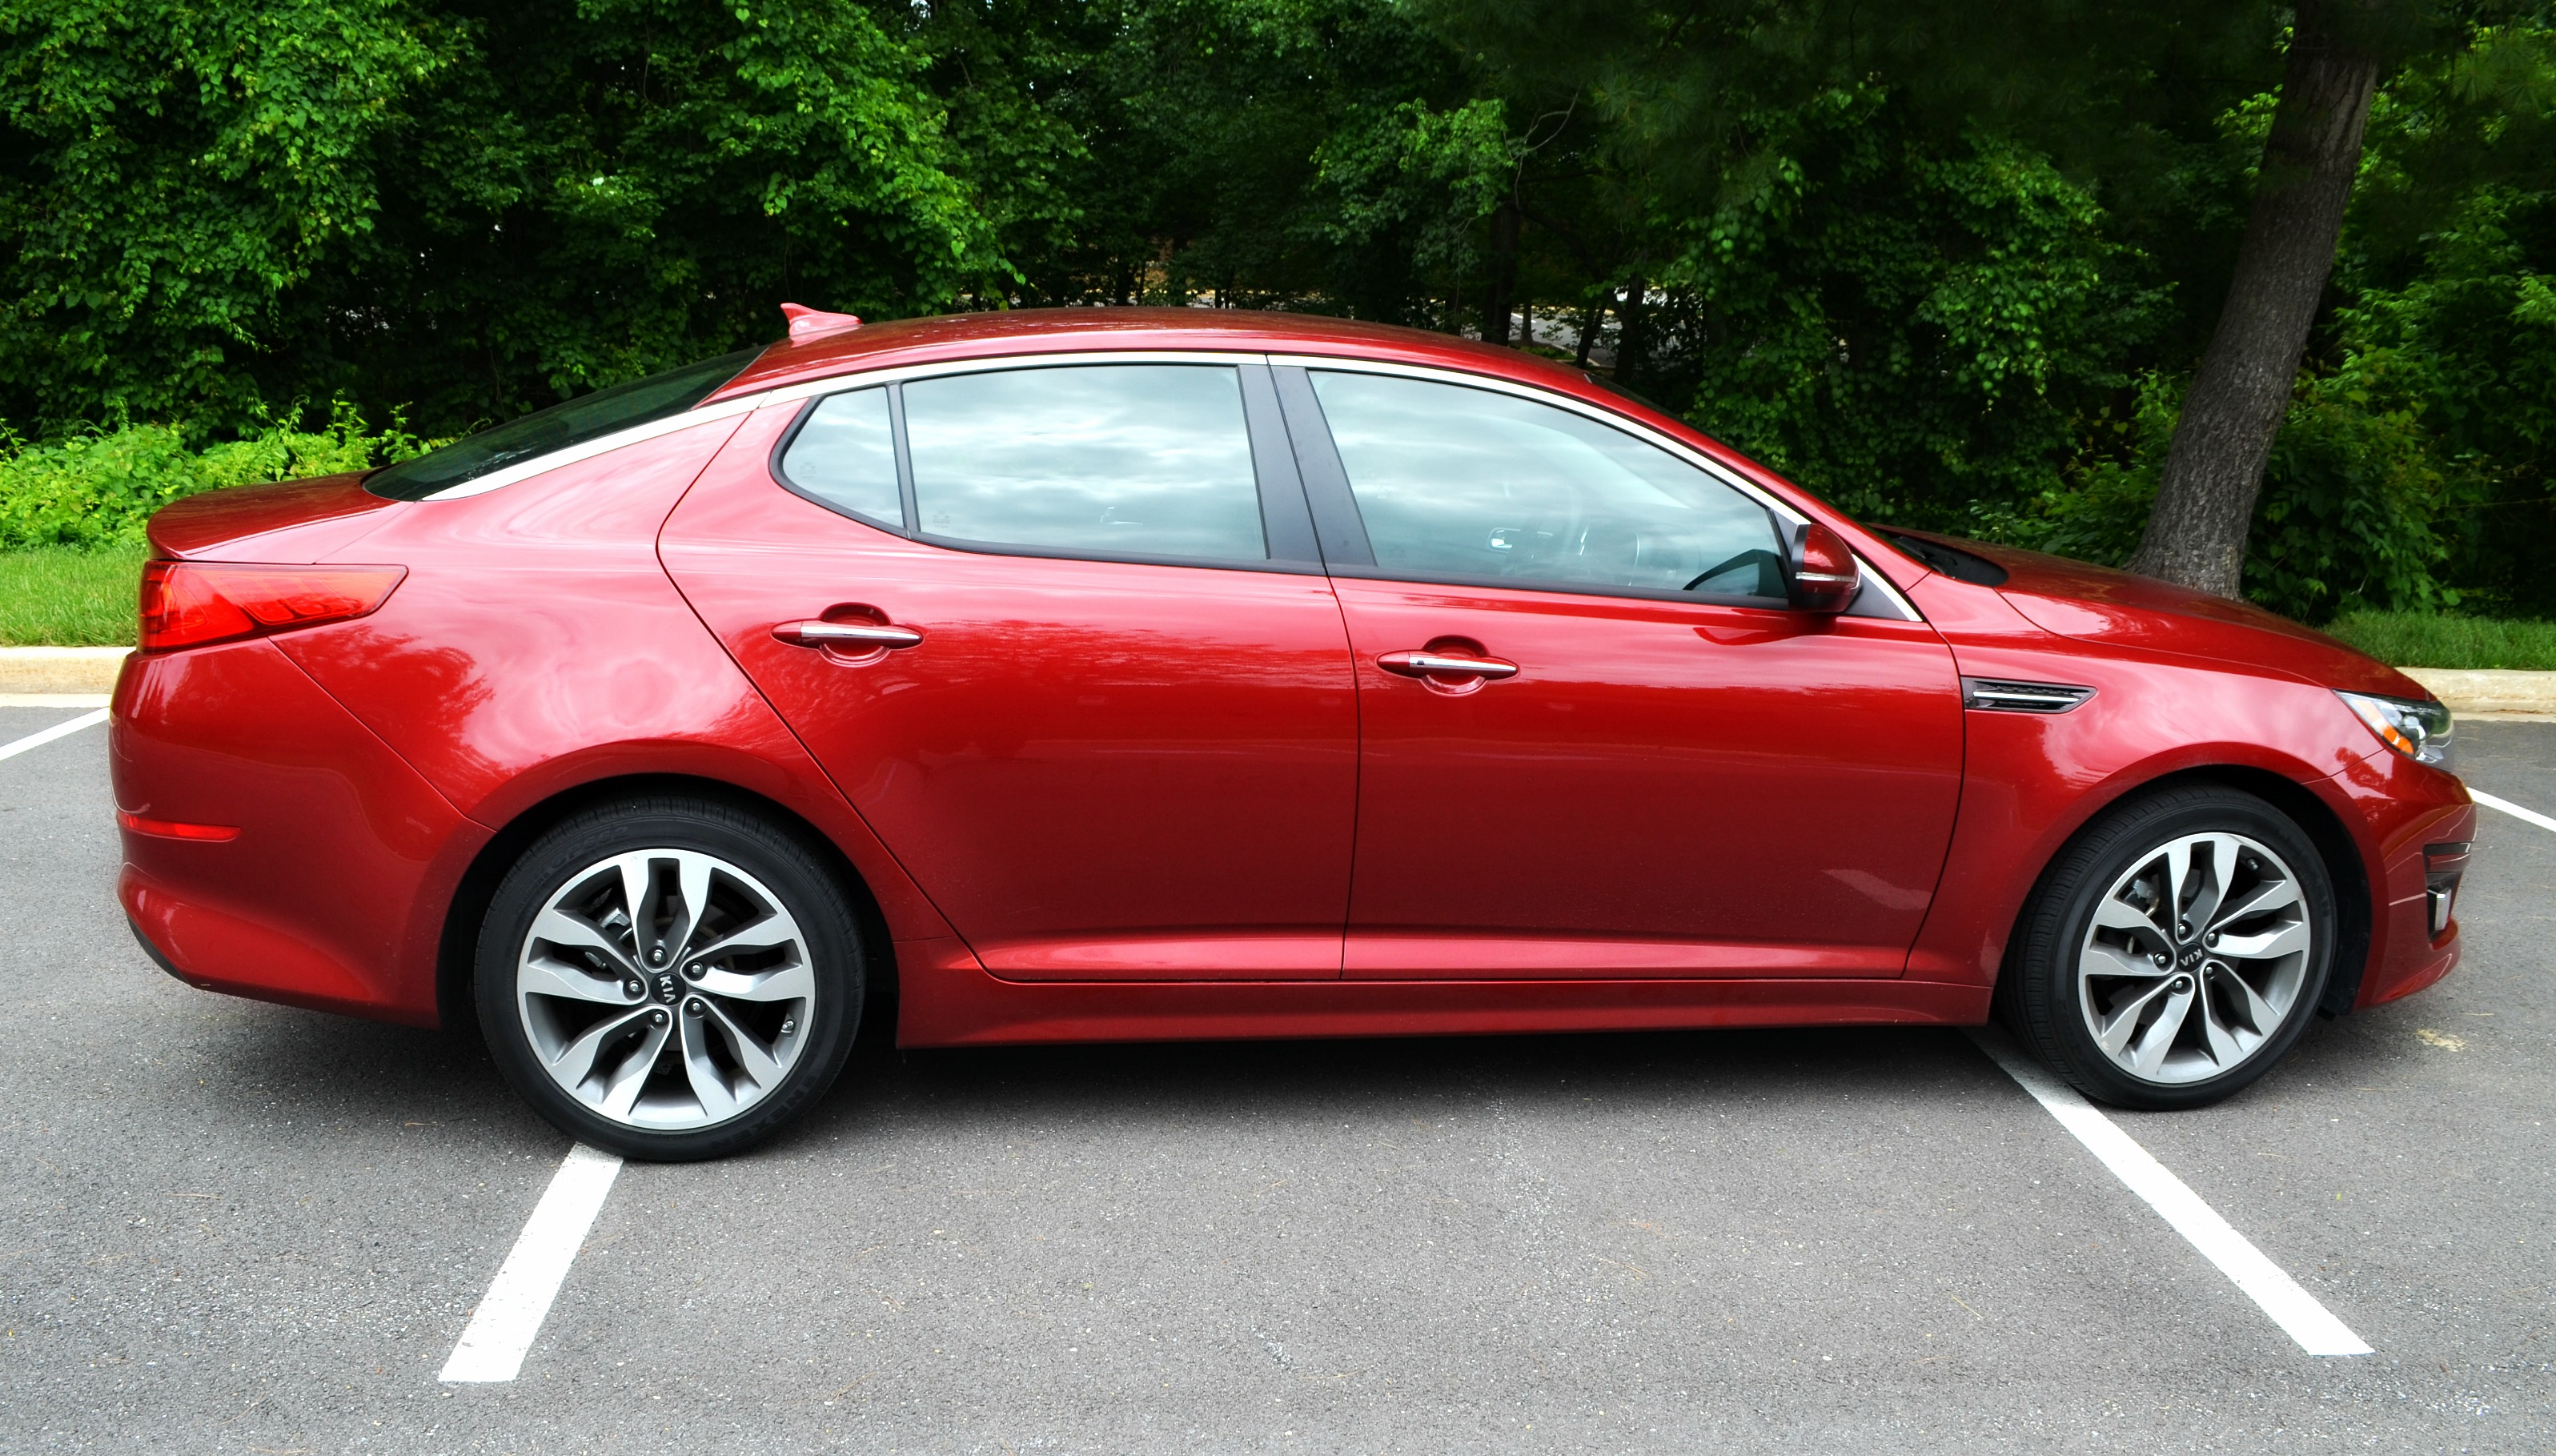 2015 Kia Optima SX - Road Trip Essentials